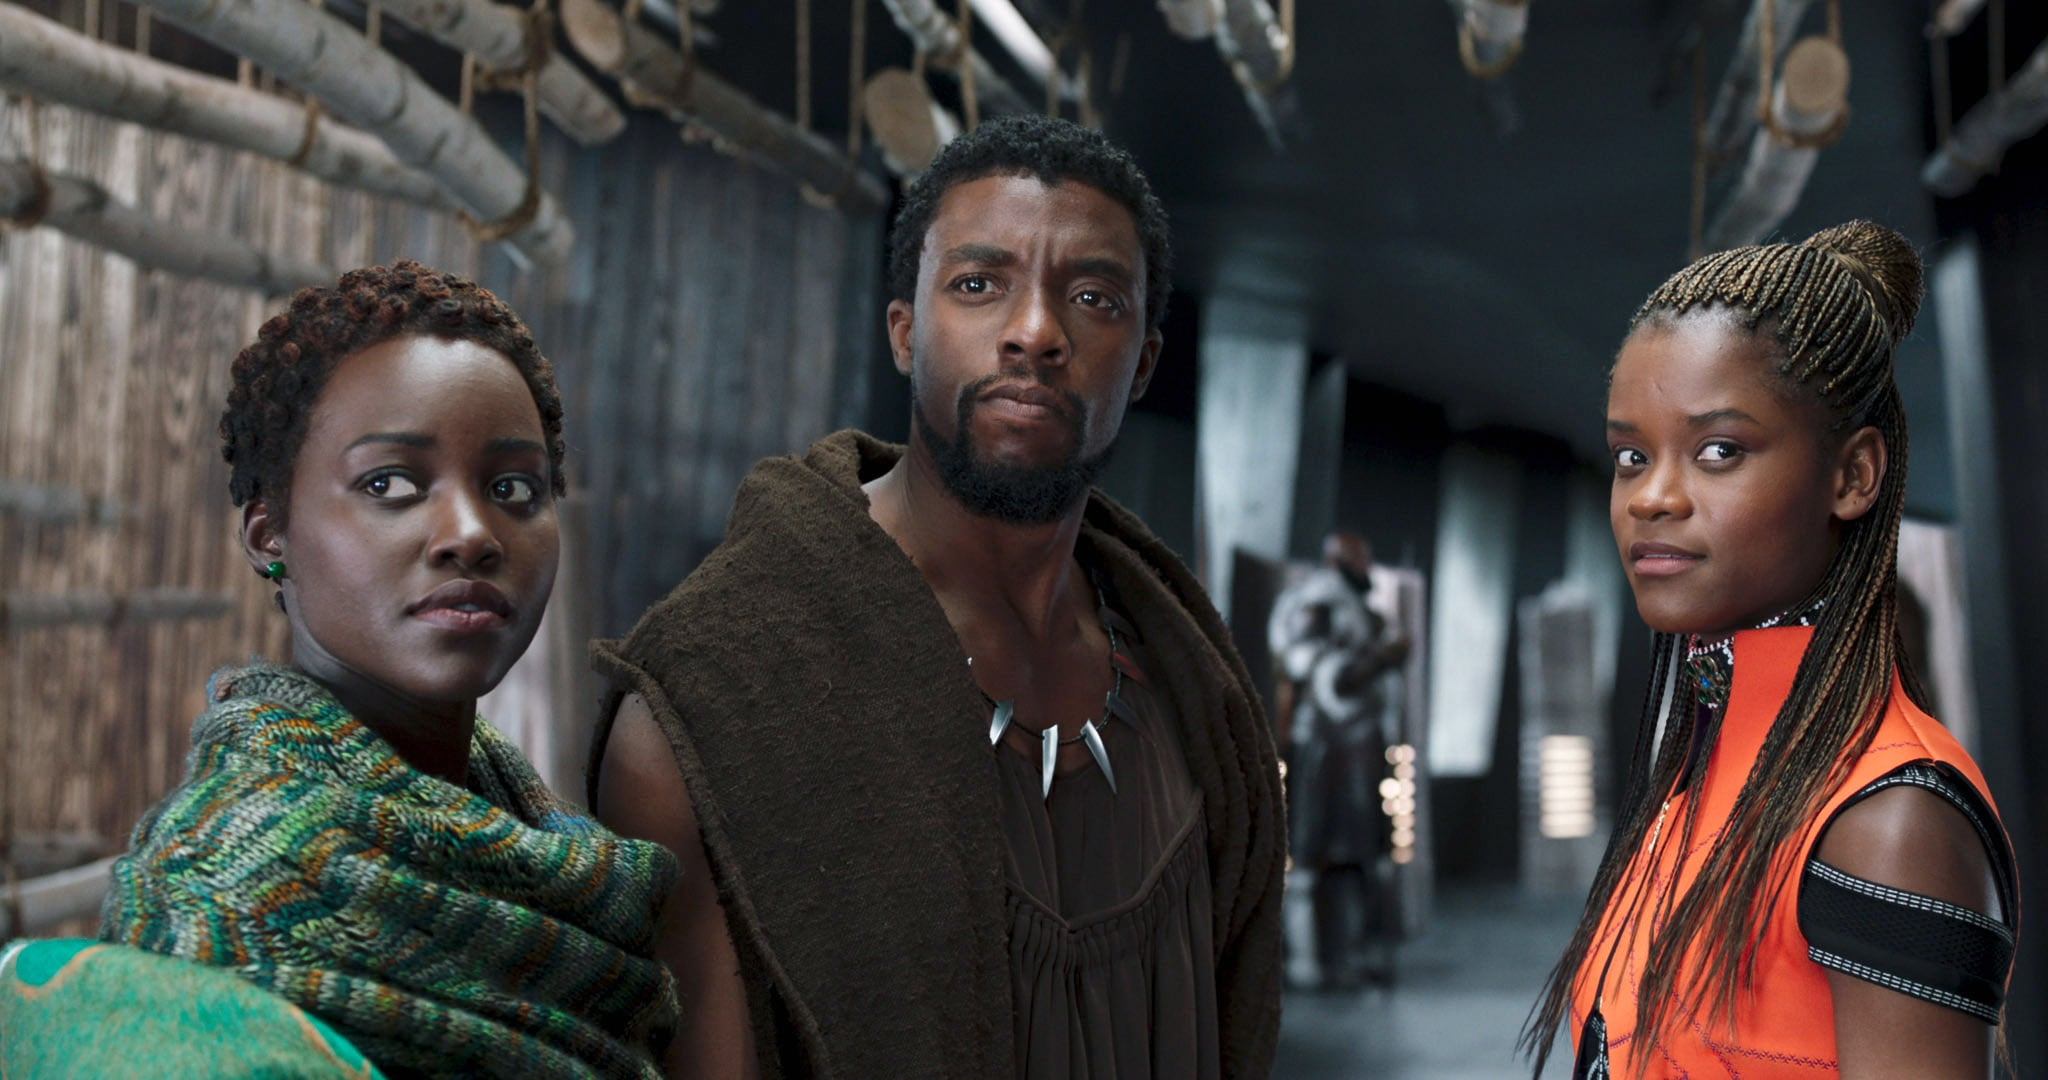 BLACK PANTHER, from left:  Lupita Nyongo, Chadwick Boseman, Letitia Wright, 2018.  Marvel /  Walt Disney Studios Motion Pictures /Courtesy Everett Collection